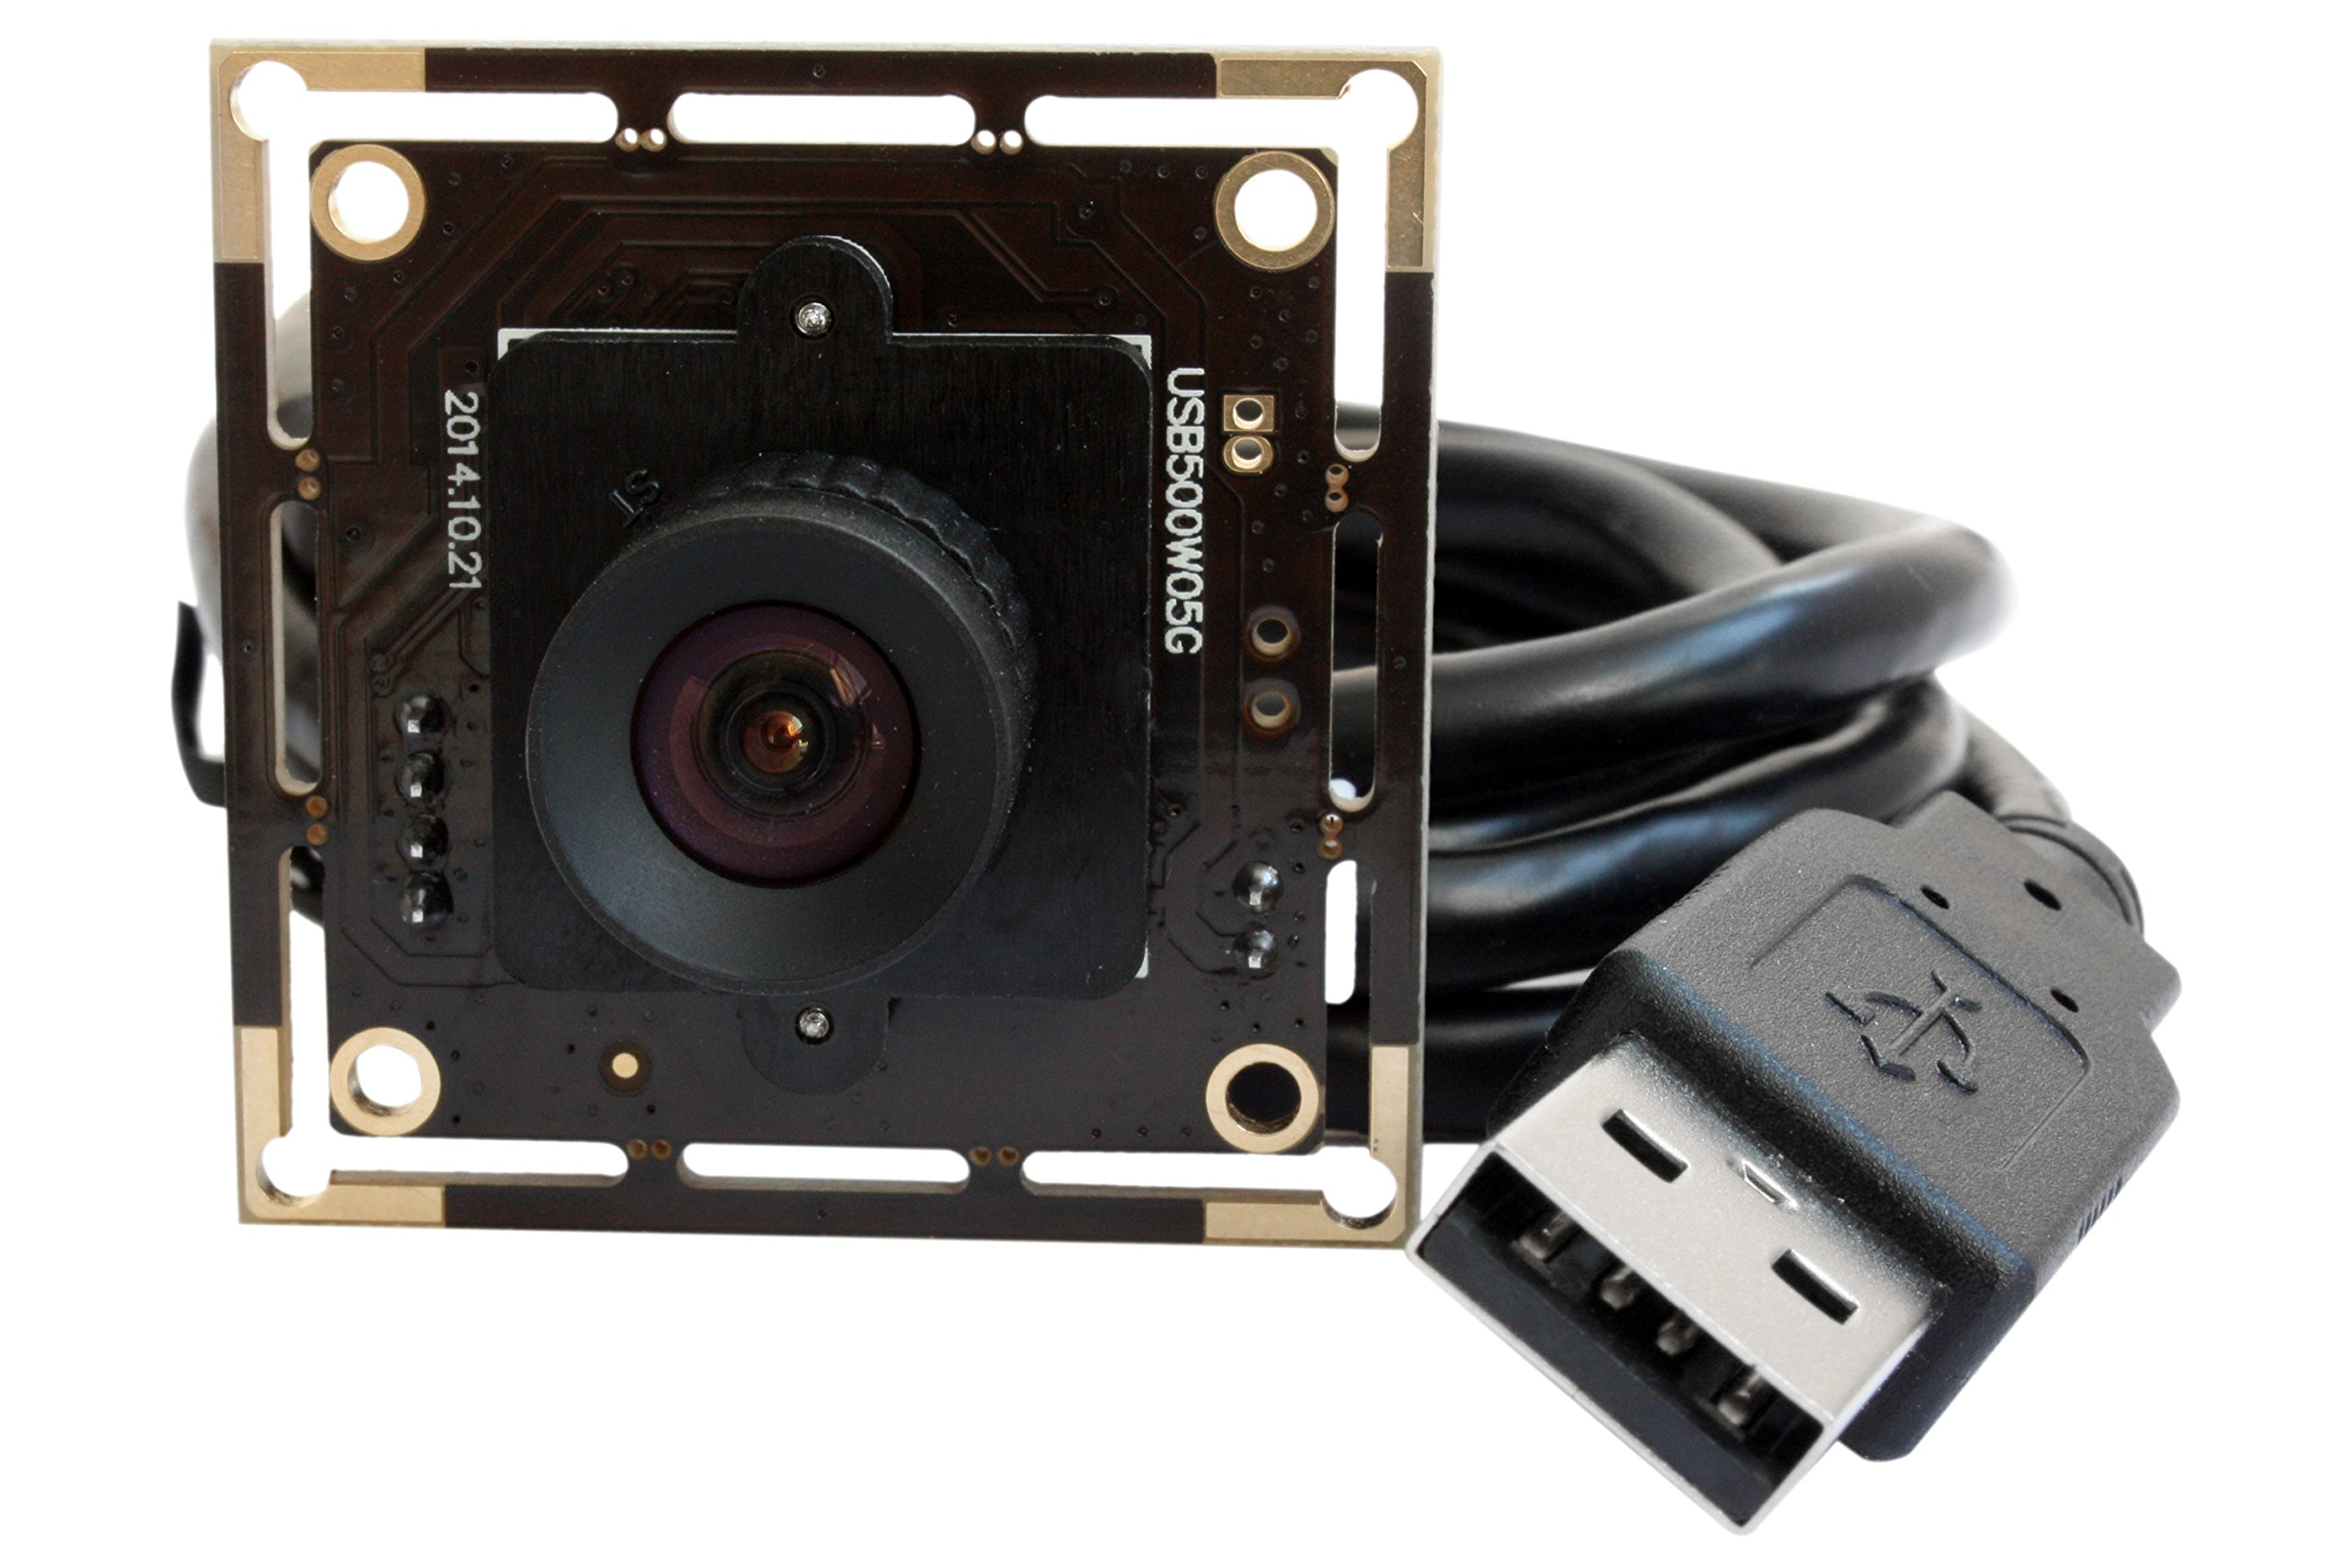 ELP 5megapixel Usb Camera module,usb with Camera 2592x1944 FHD Wide Angle Mjpeg,uvc 5megapixel Hd USB Camera module for Industrial, Machine Vision,undistorted Imaging,correctable,aptina Sensor.fhd Usb Camera.2592x1944 FHD UVC Yuyv.